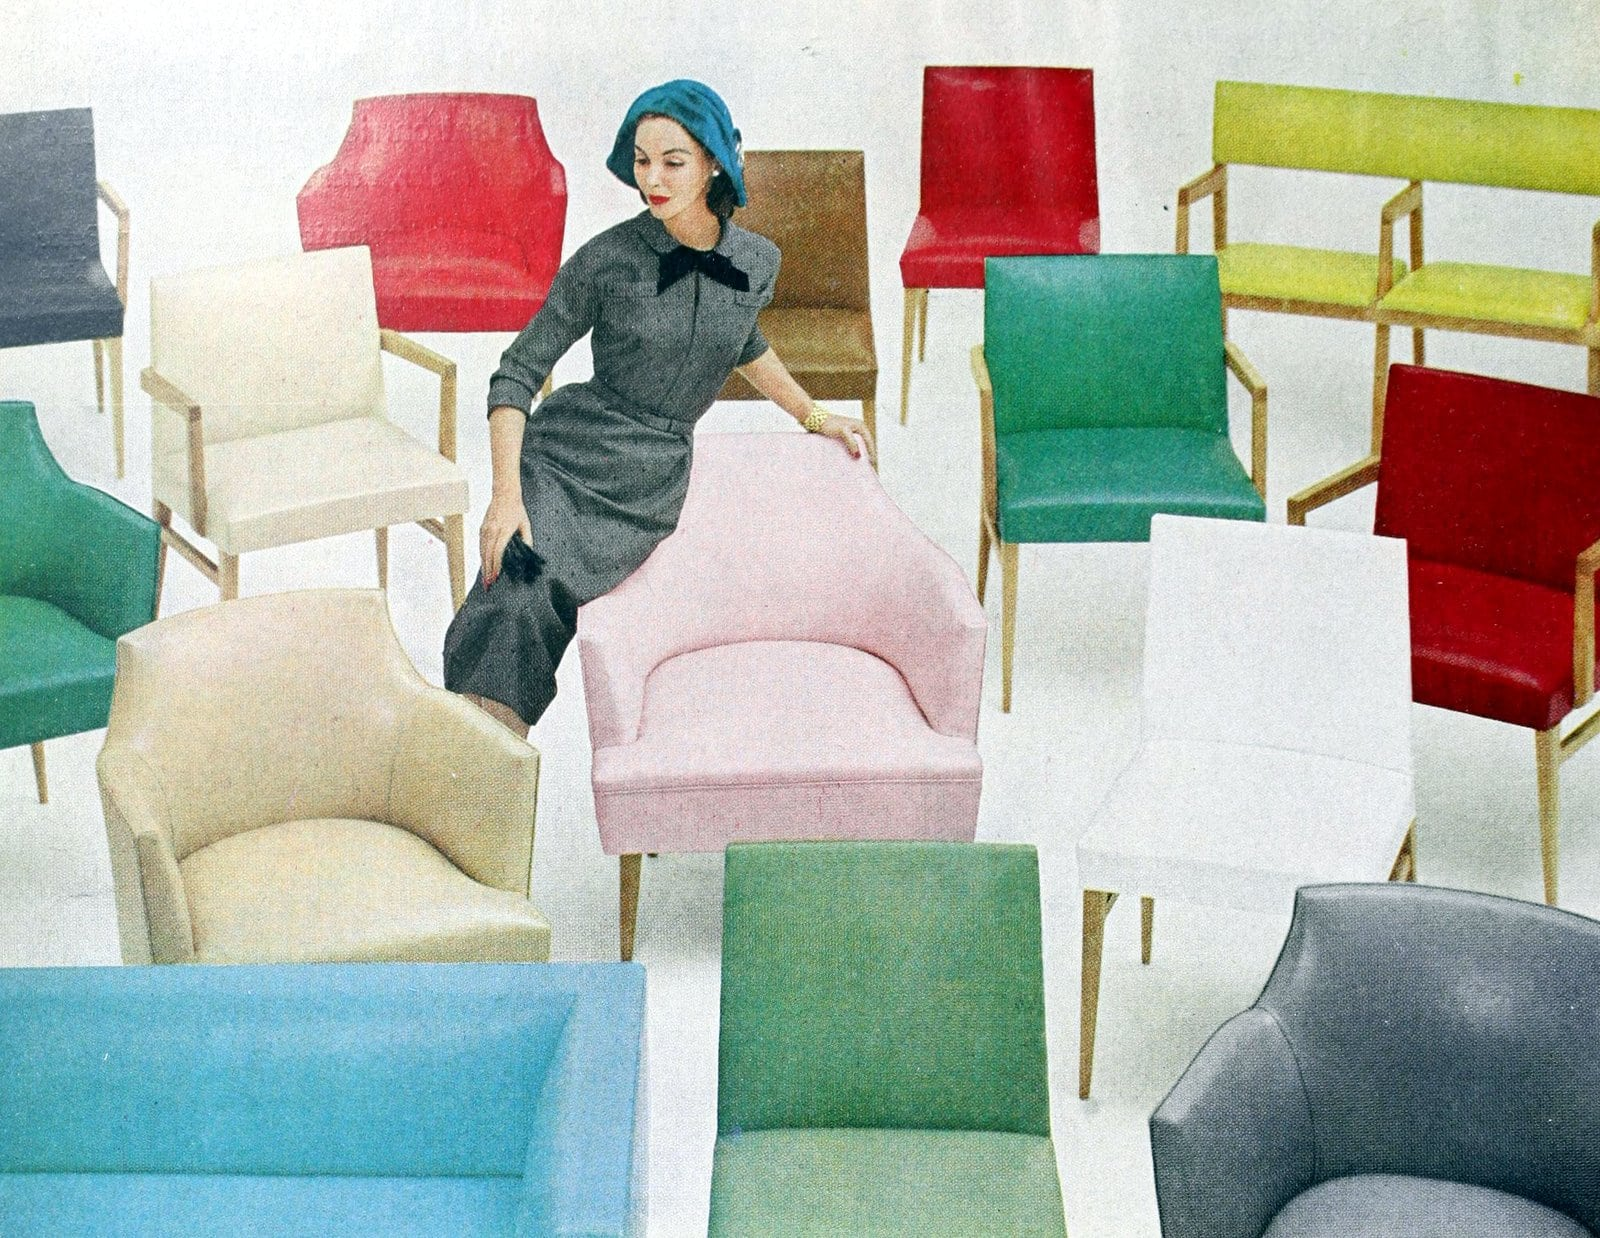 Retro chair styles from around 1960